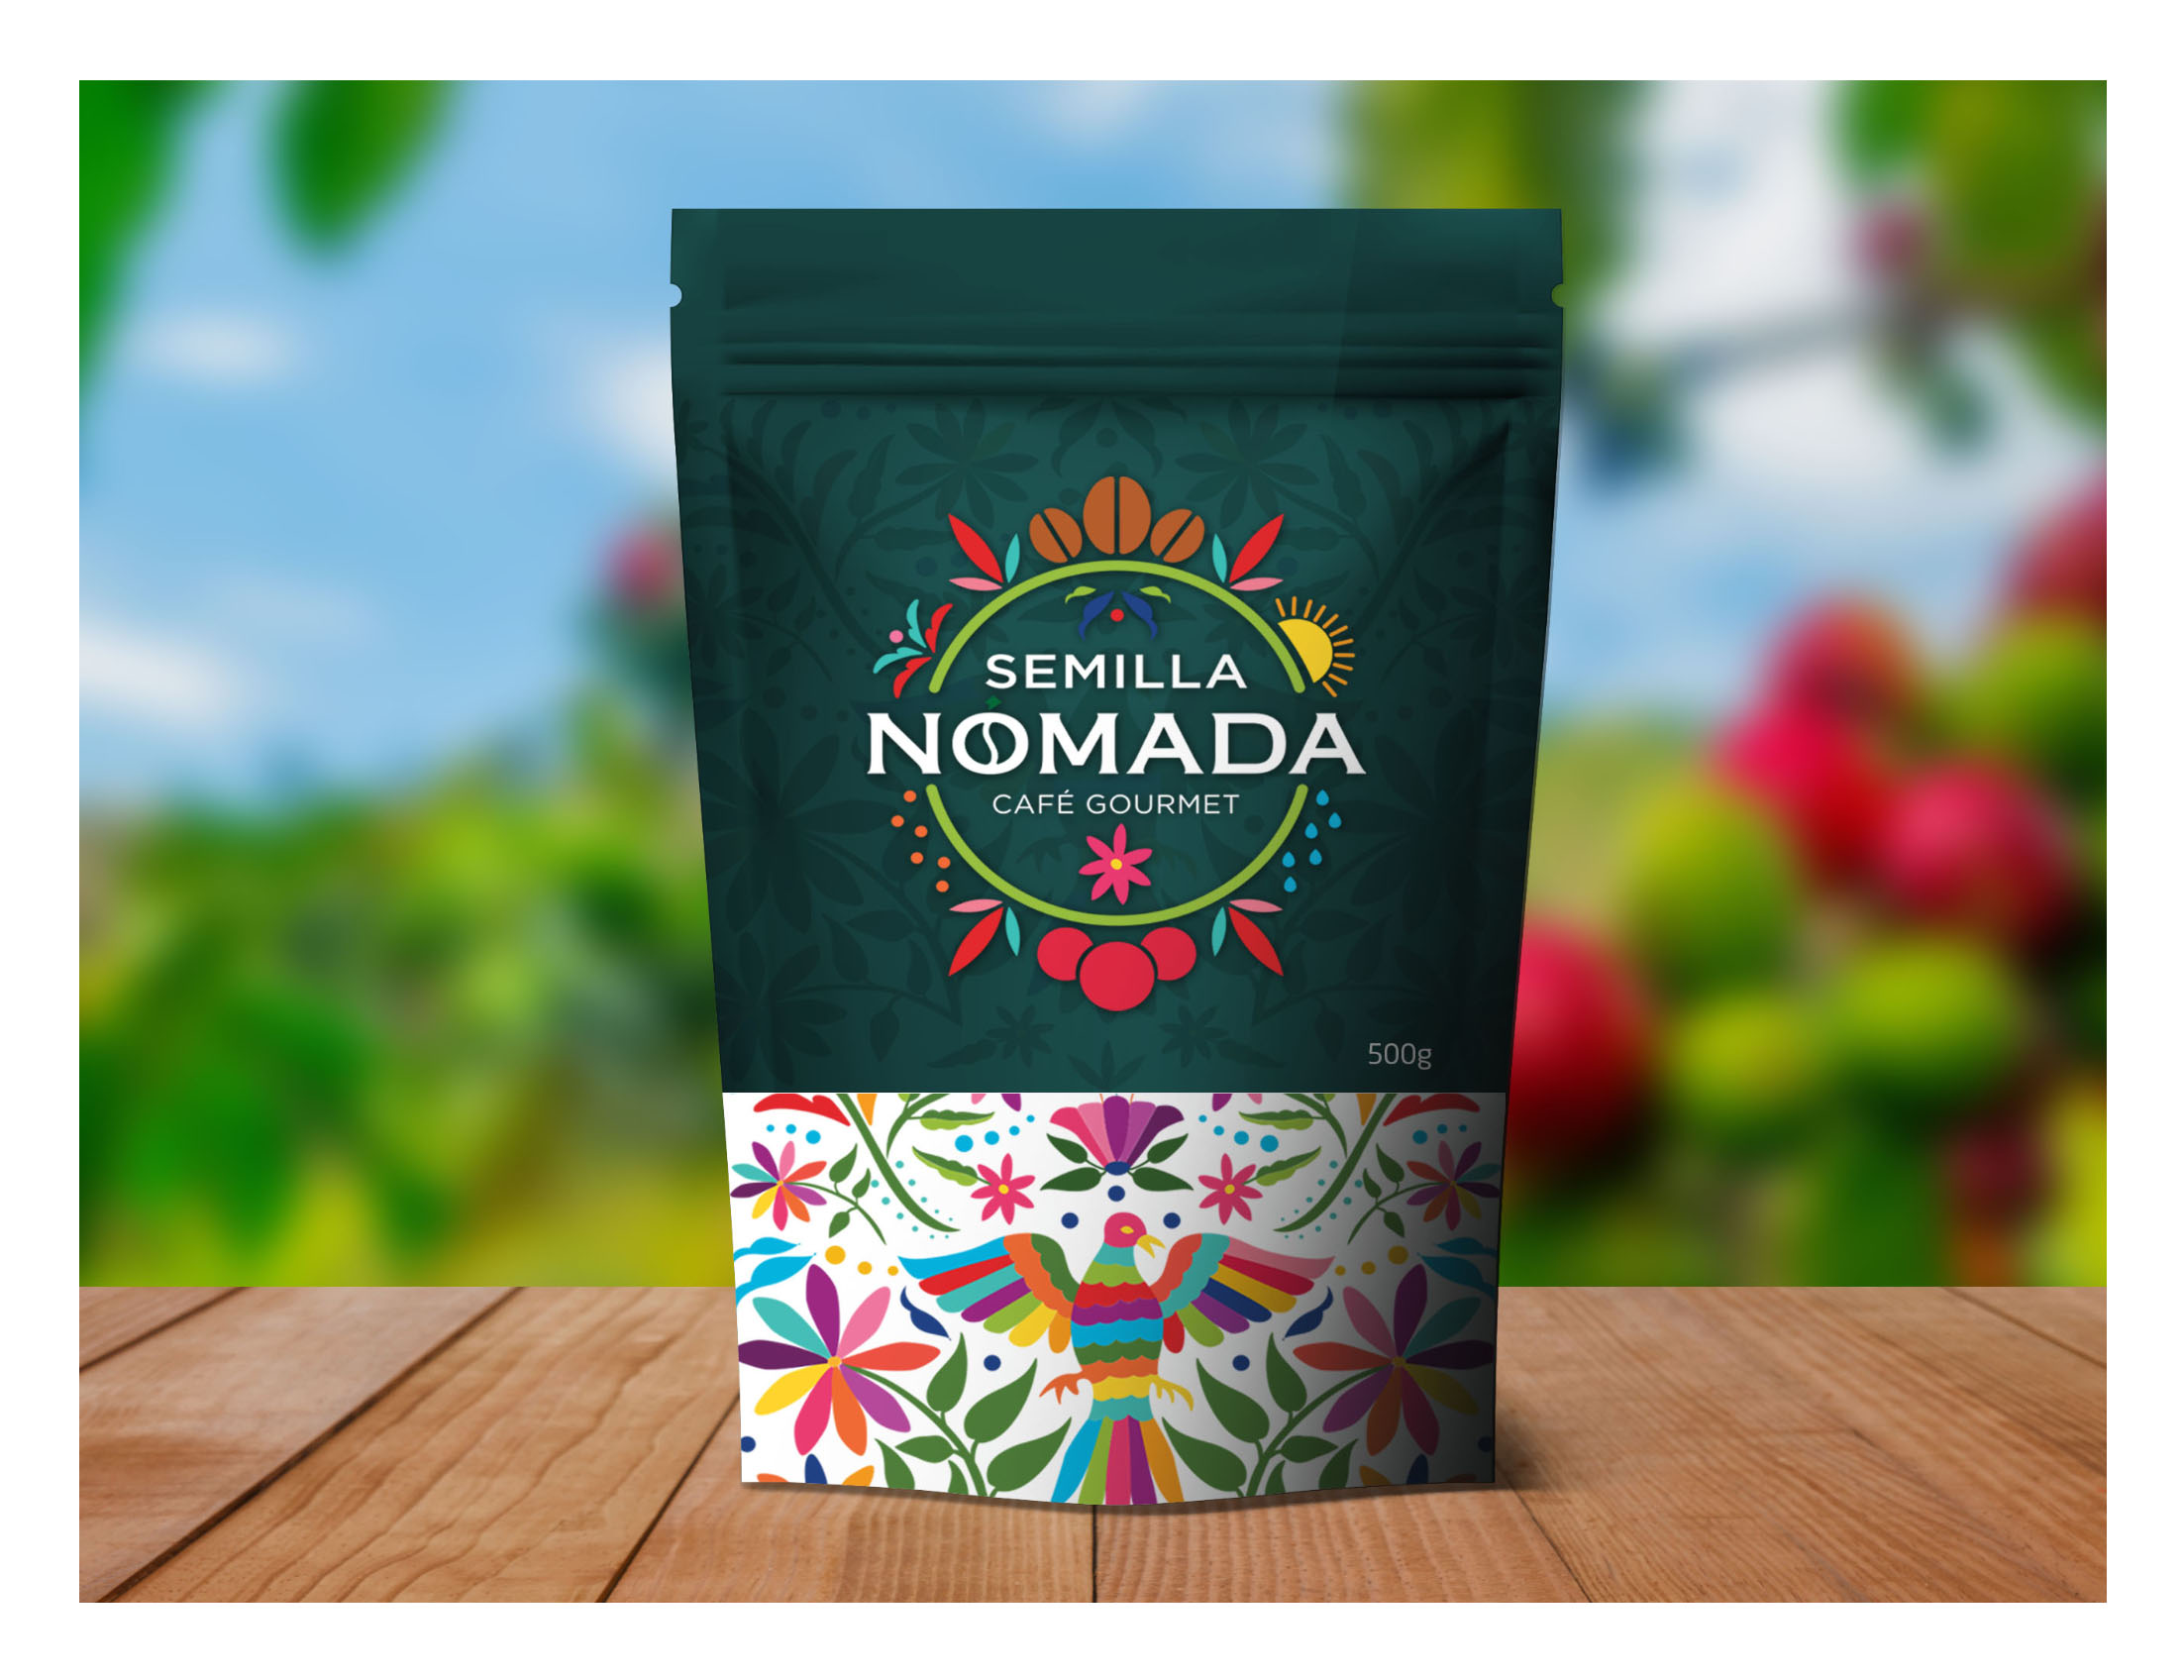 Branding and Packaging for a Collective Brand of Small Indigenous Coffee Producers